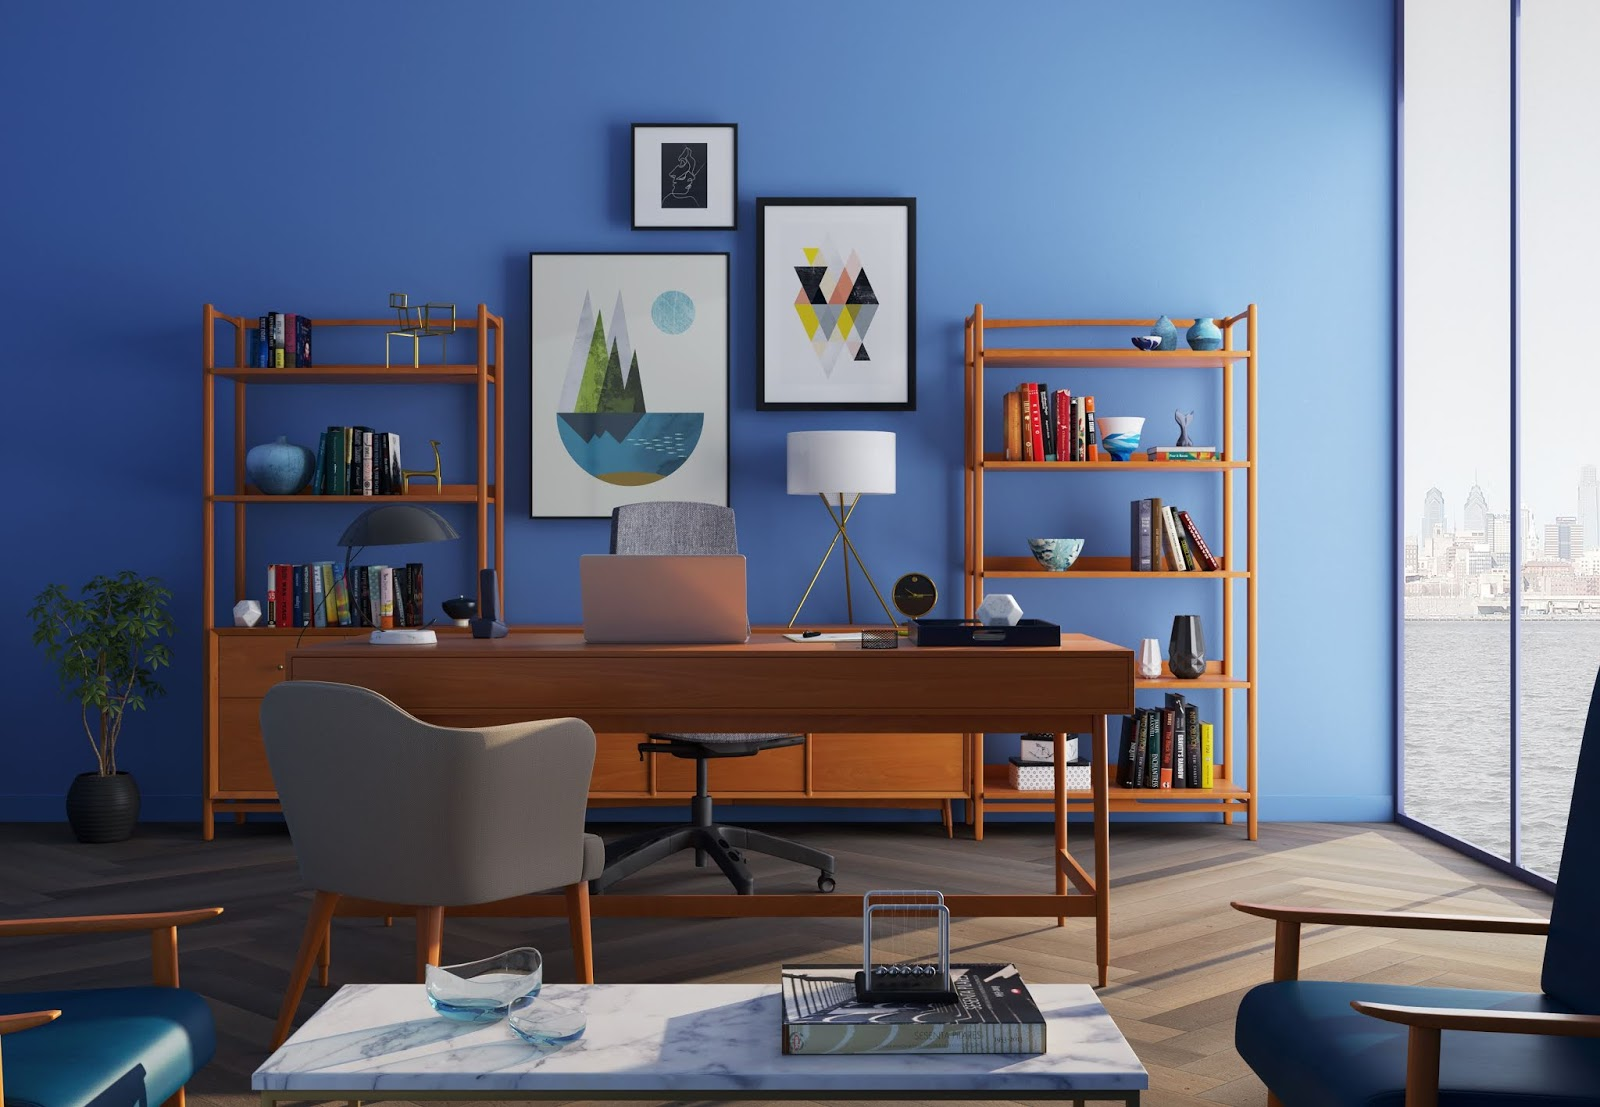 11 Quick Decorating Ideas to Beautify Your Home | Home Decor Ideas